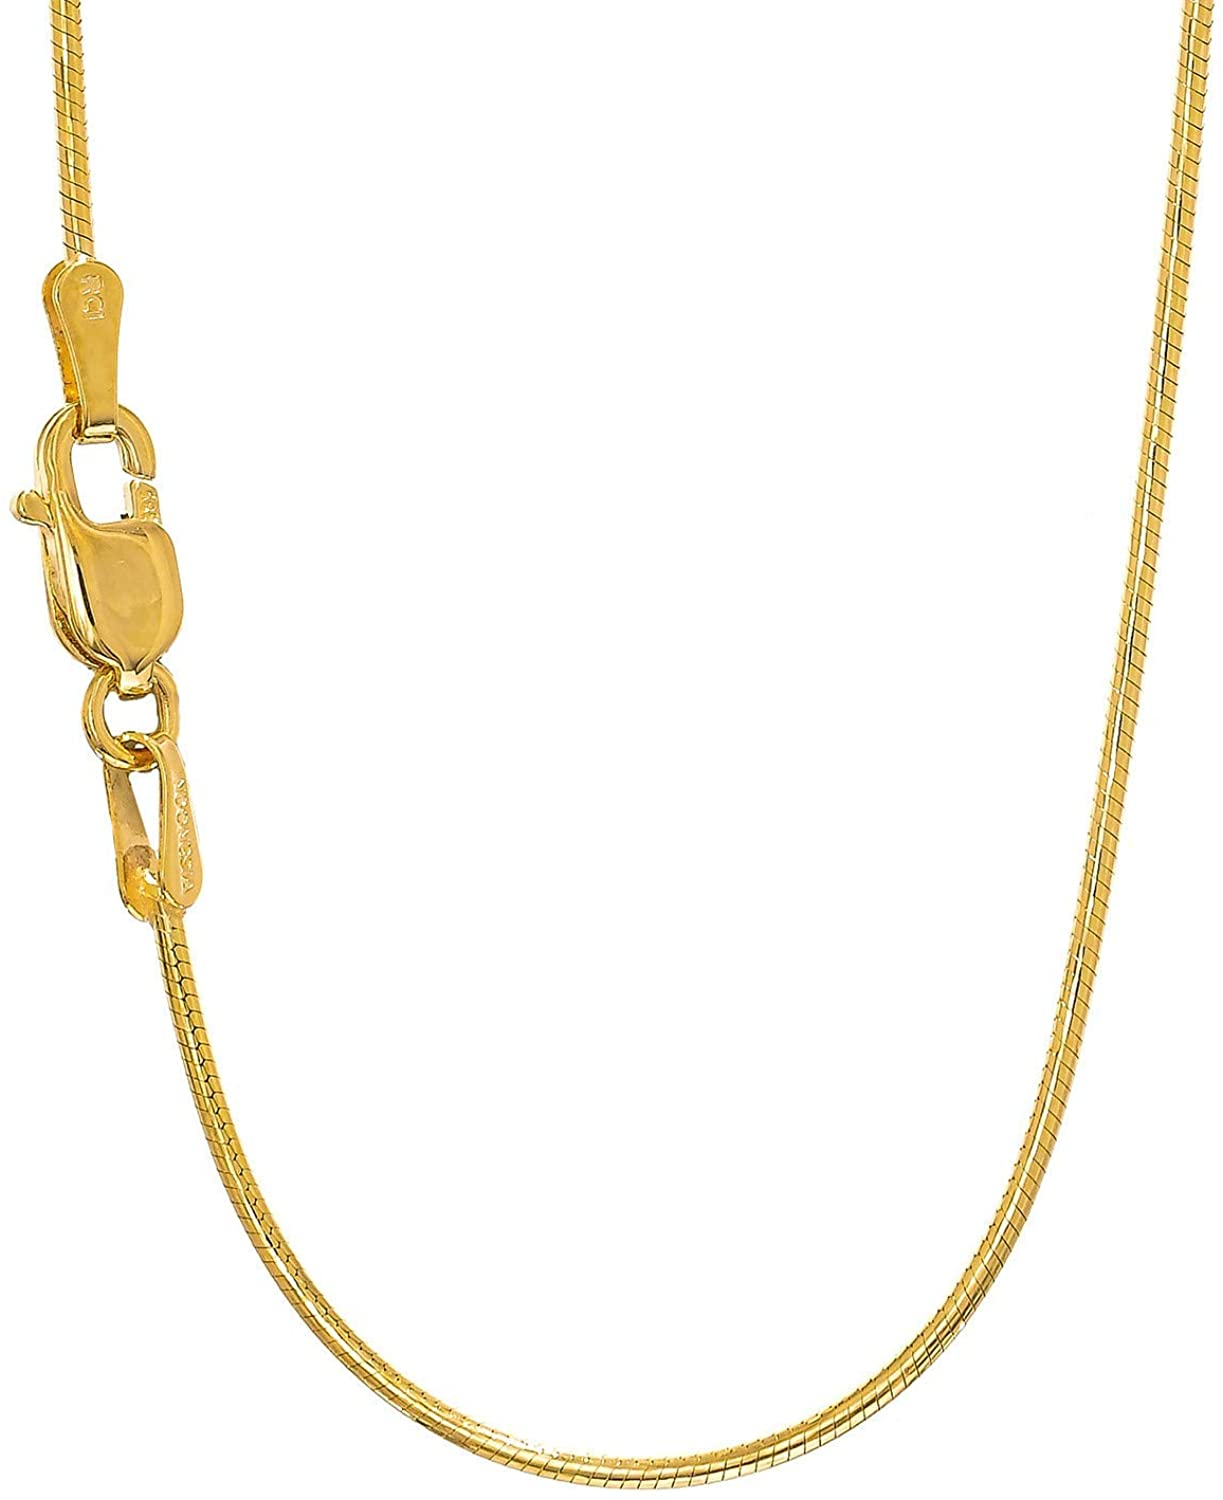 JewelStop 14k Solid Gold Yellow Or White 0.9 mm Round Snake Chain Necklace 16